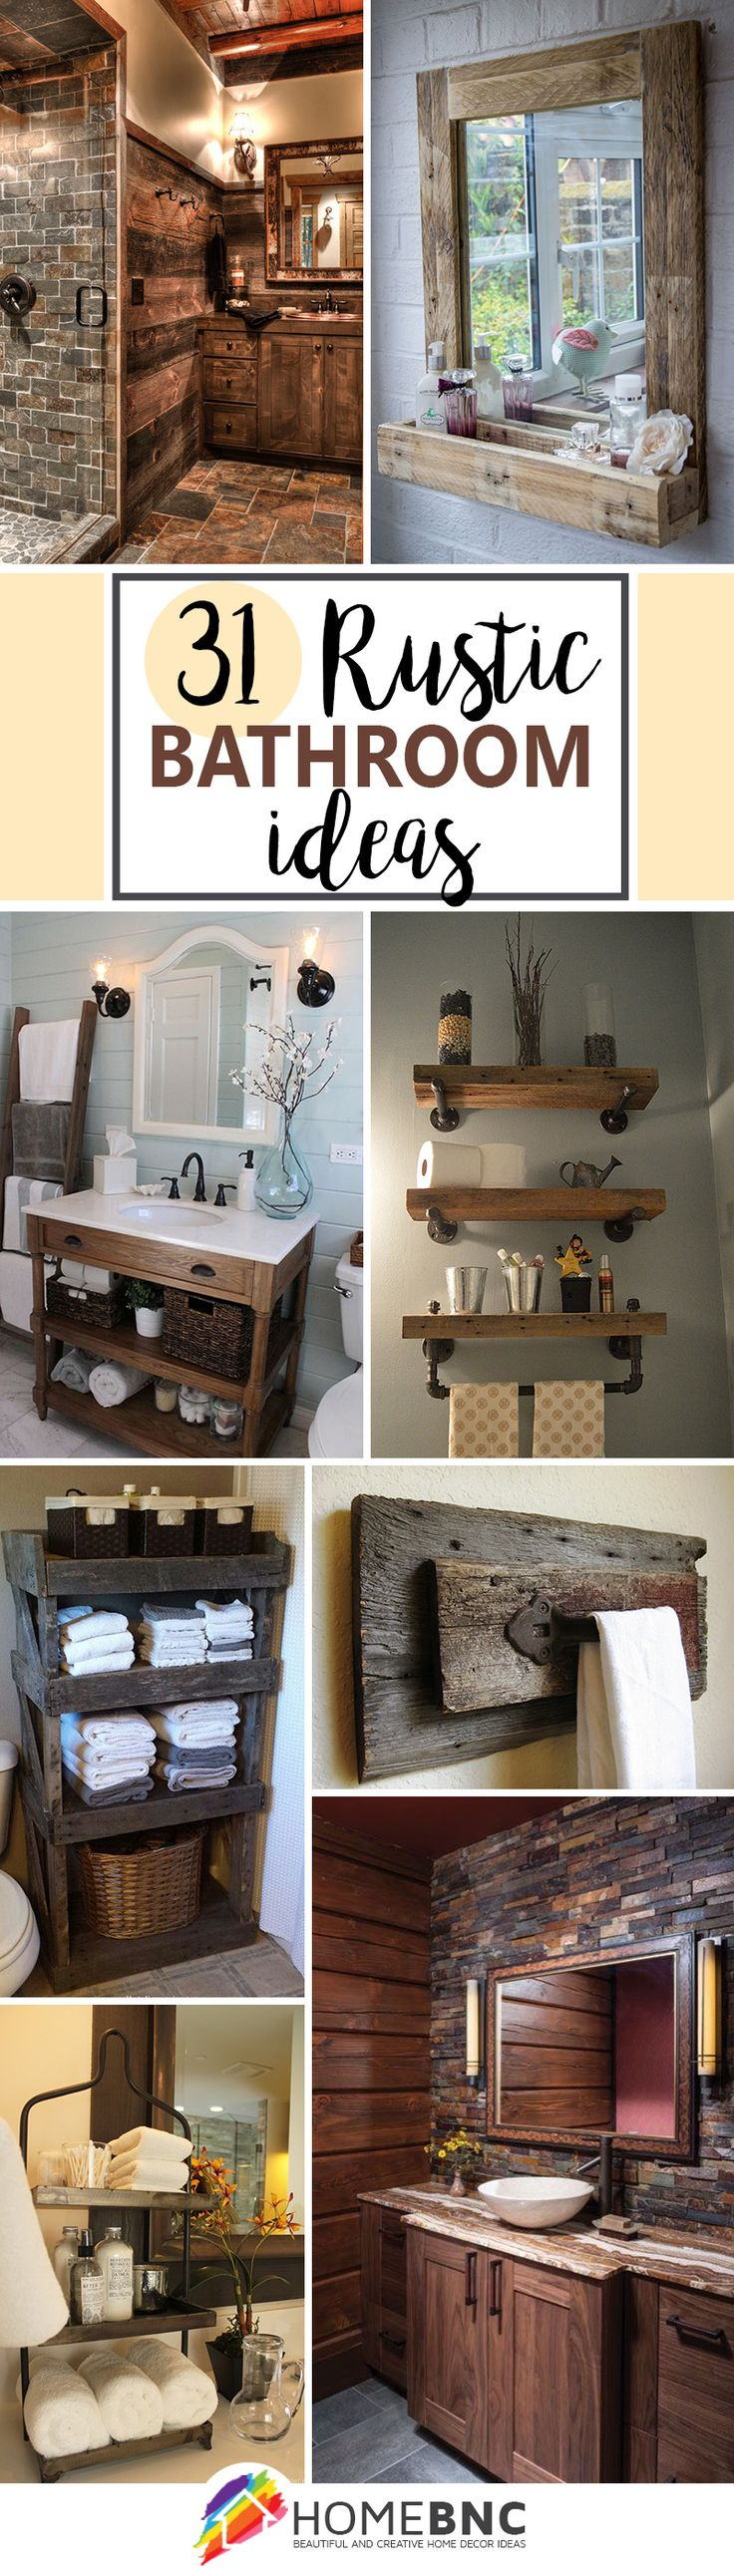 Rustic master bathroom with log walls amp undermount sink zillow digs - 31 Gorgeous Rustic Bathroom Decor Ideas To Try At Home